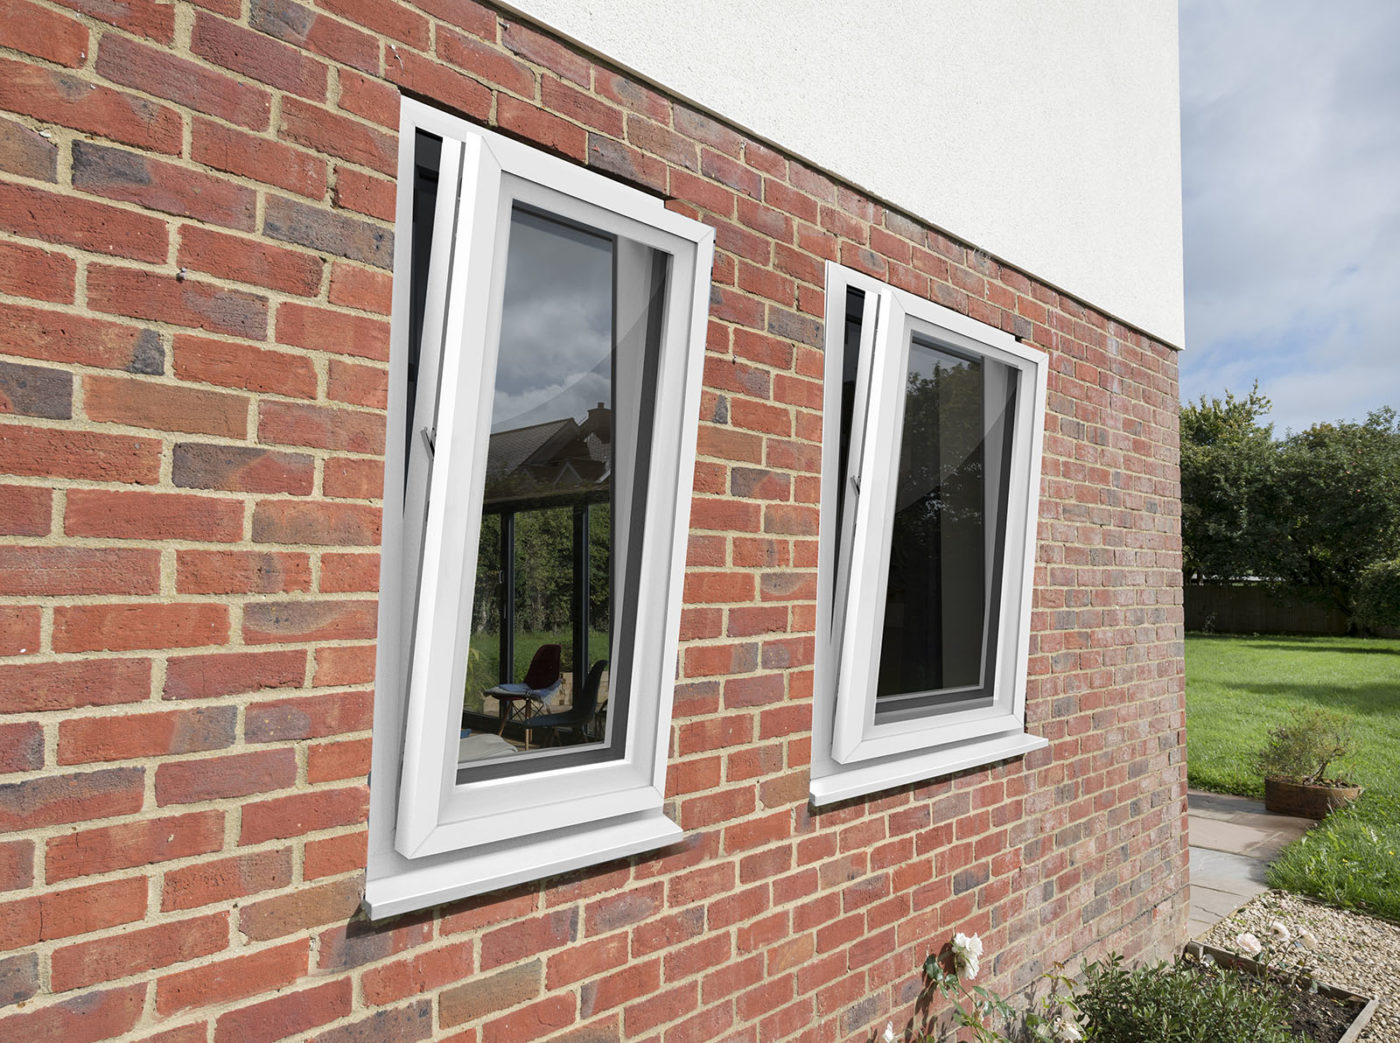 How to Maintain Your Windows Gloucestershire?